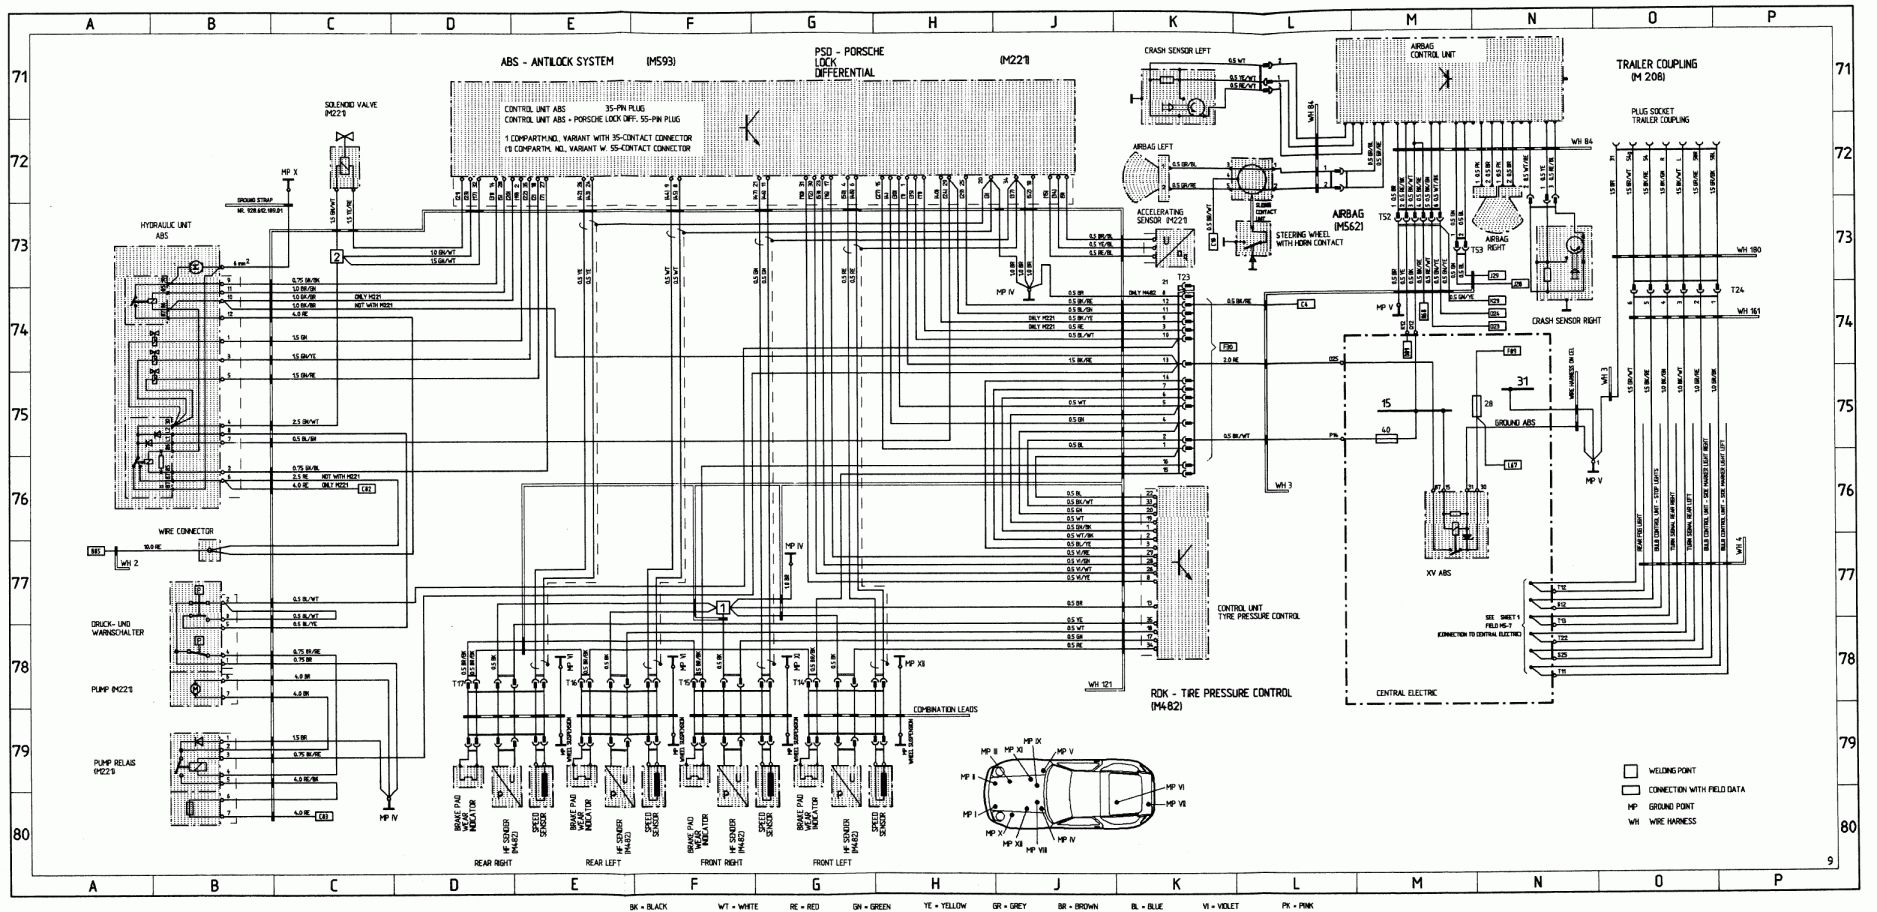 15 E36 M3 Engine Wiring Diagram Engine Diagram Wiringg Net Electrical Wiring Diagram Bmw E46 Electrical Wiring